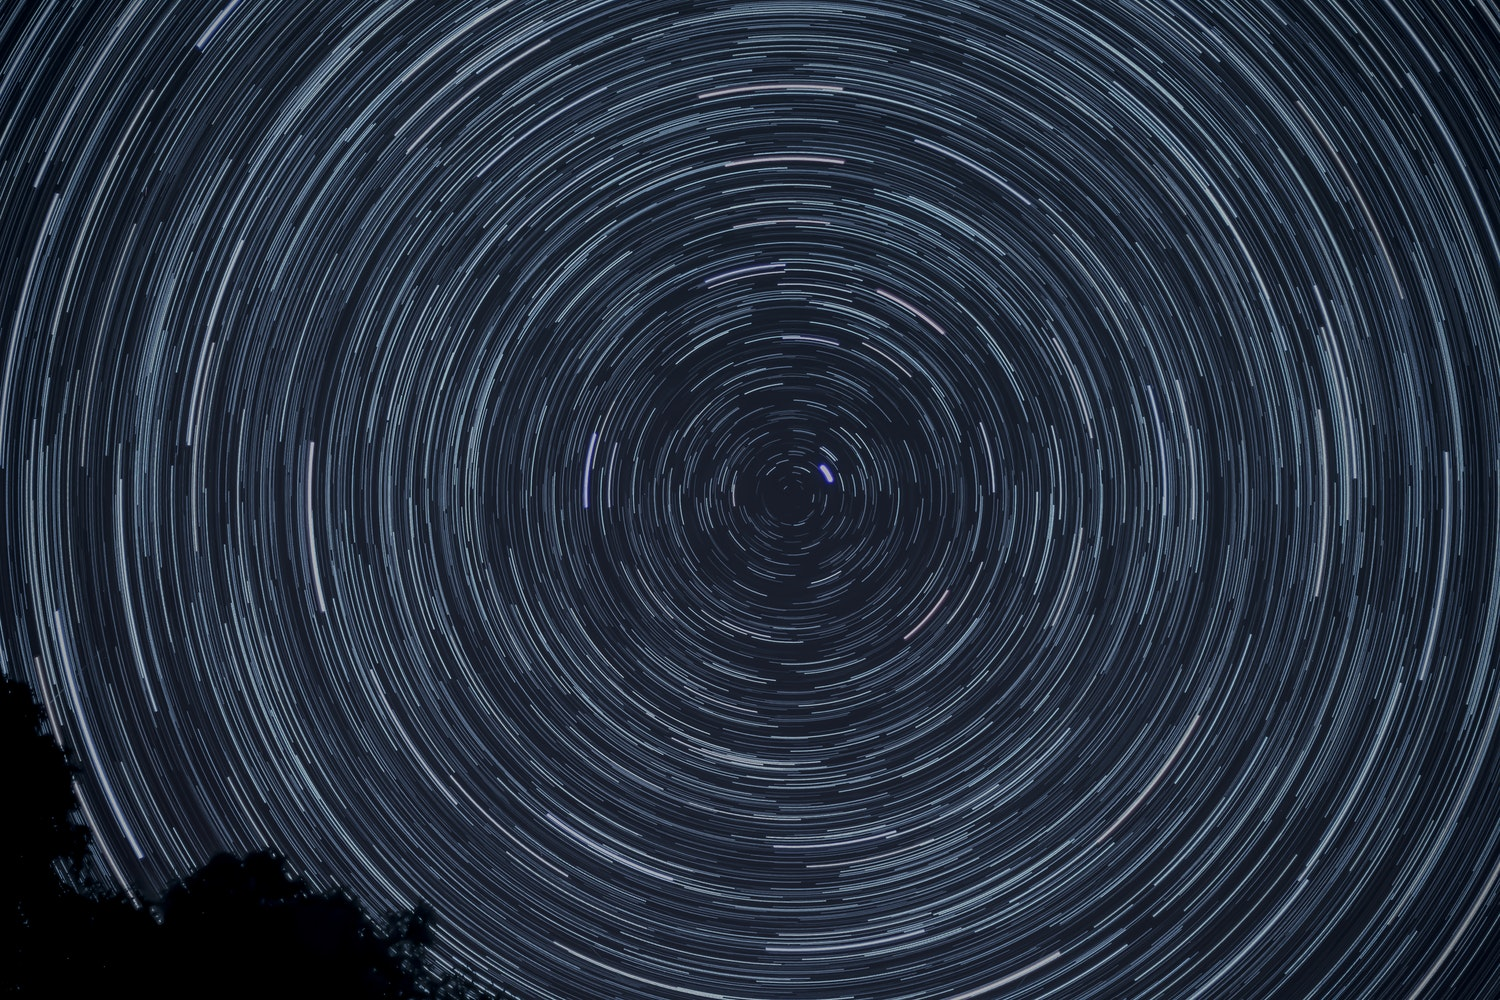 star trails at night sky photography